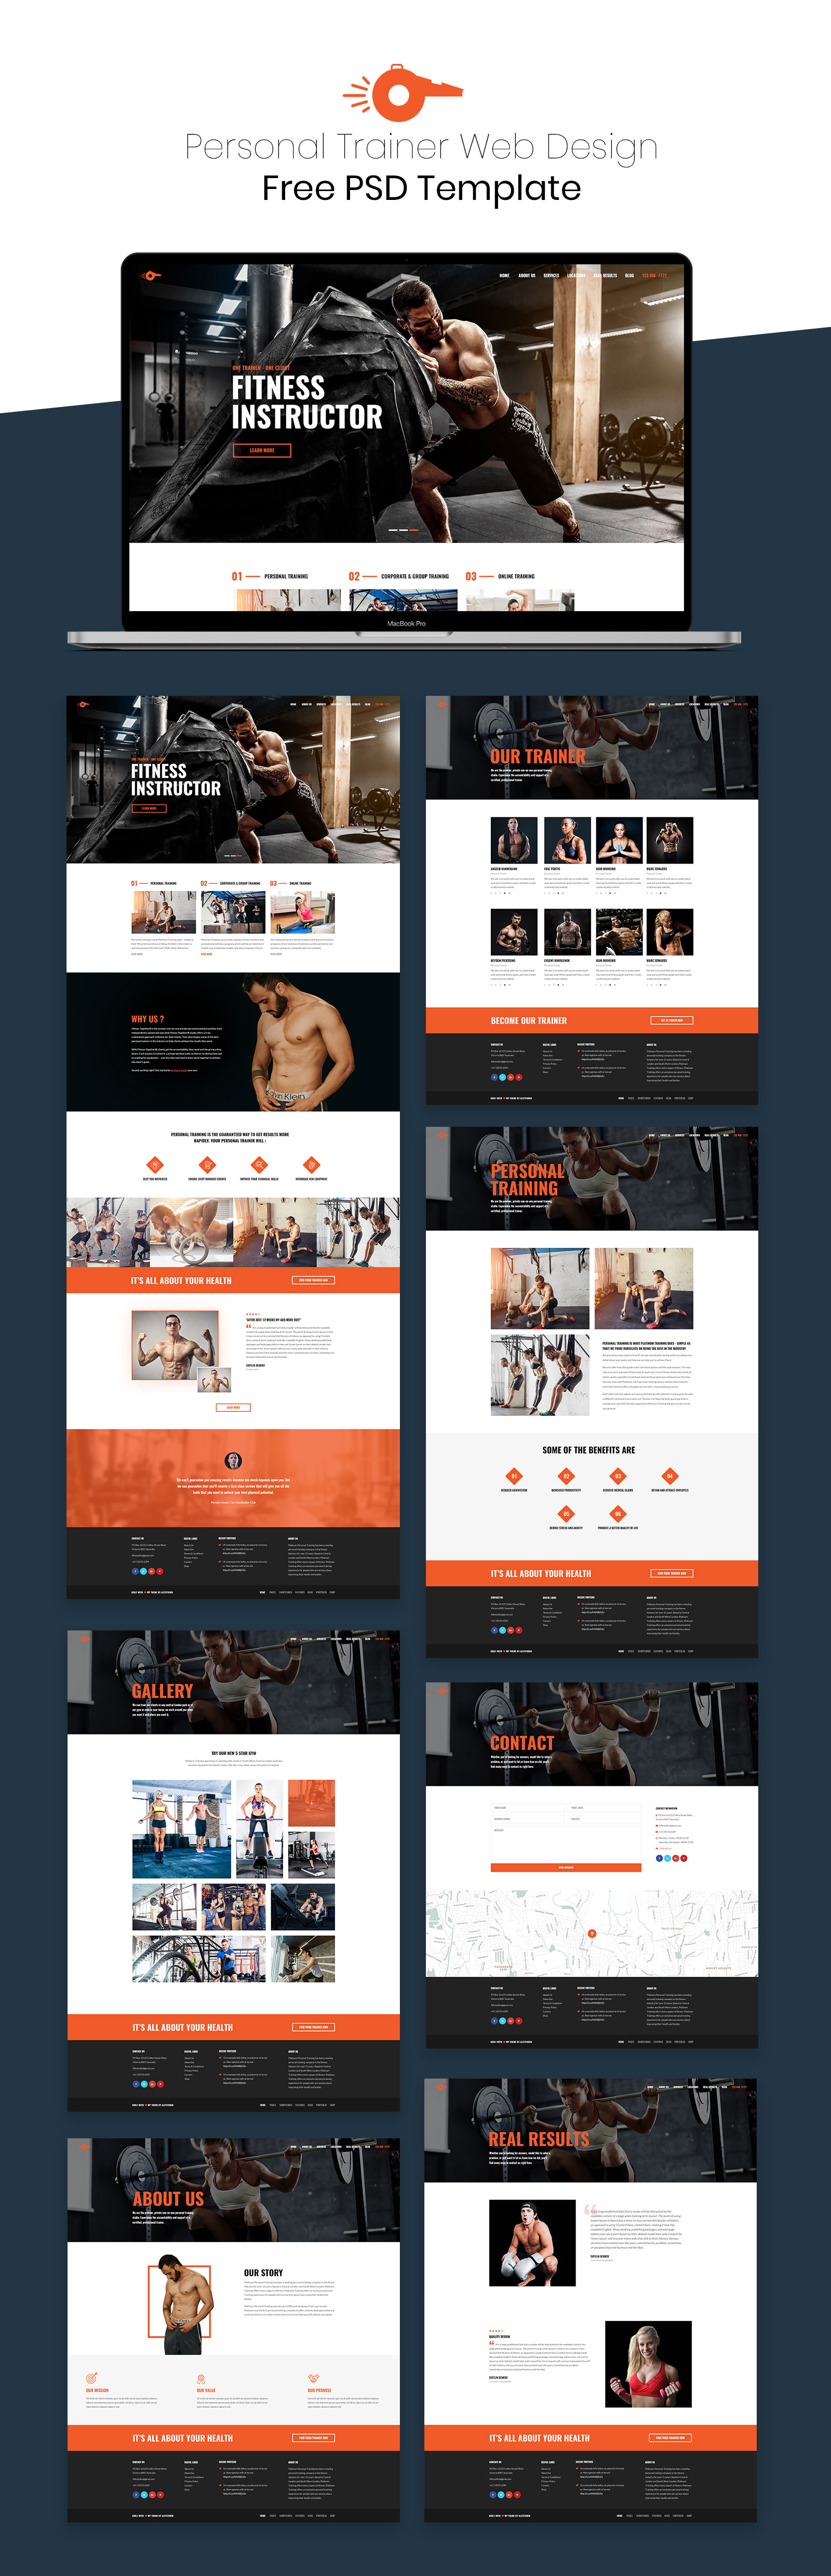 free PSD web template for Personal Trainer